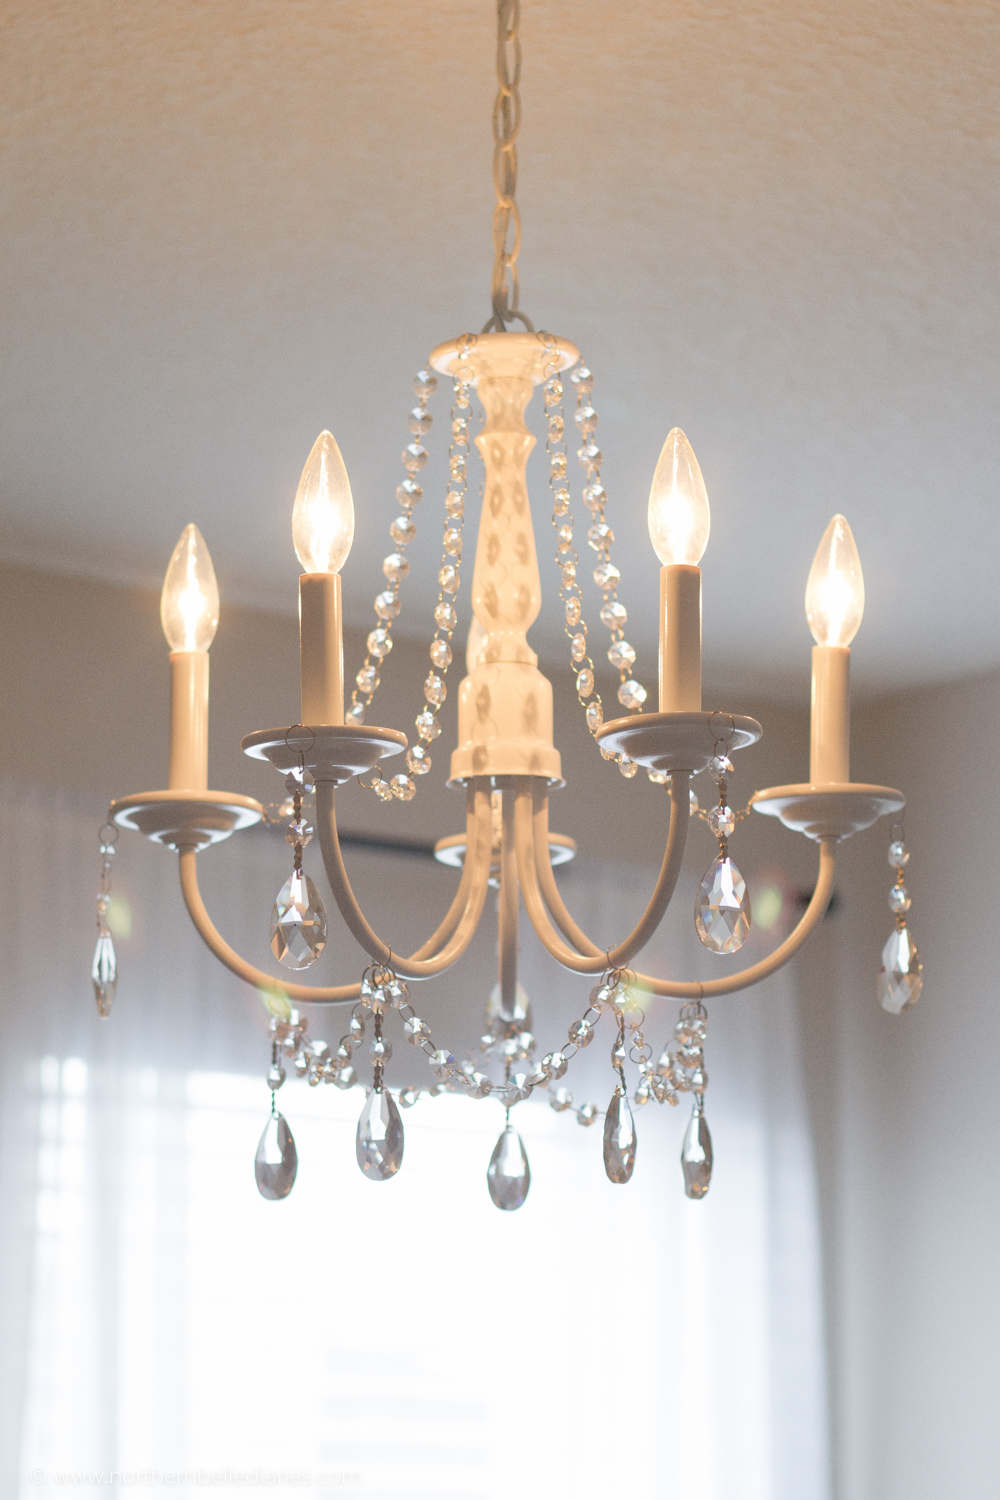 Diy crystal chandelier easy tutorial you can make your own diy crystal chandelier this site shows you how aloadofball Gallery